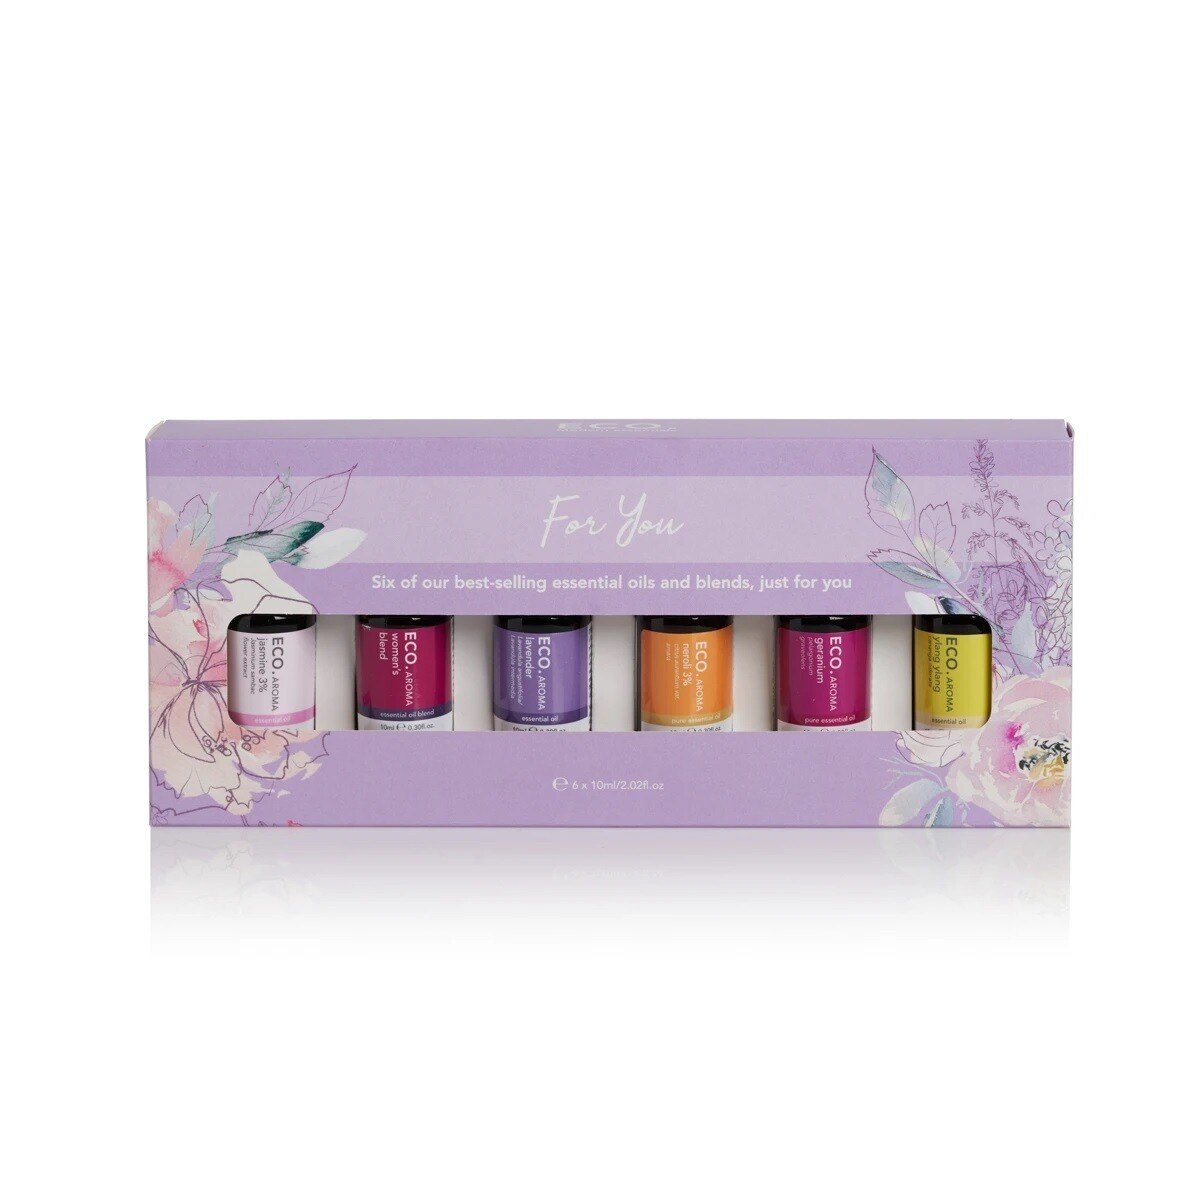 ECO. For You 6 Pack (6x 10ml Essential Oils)